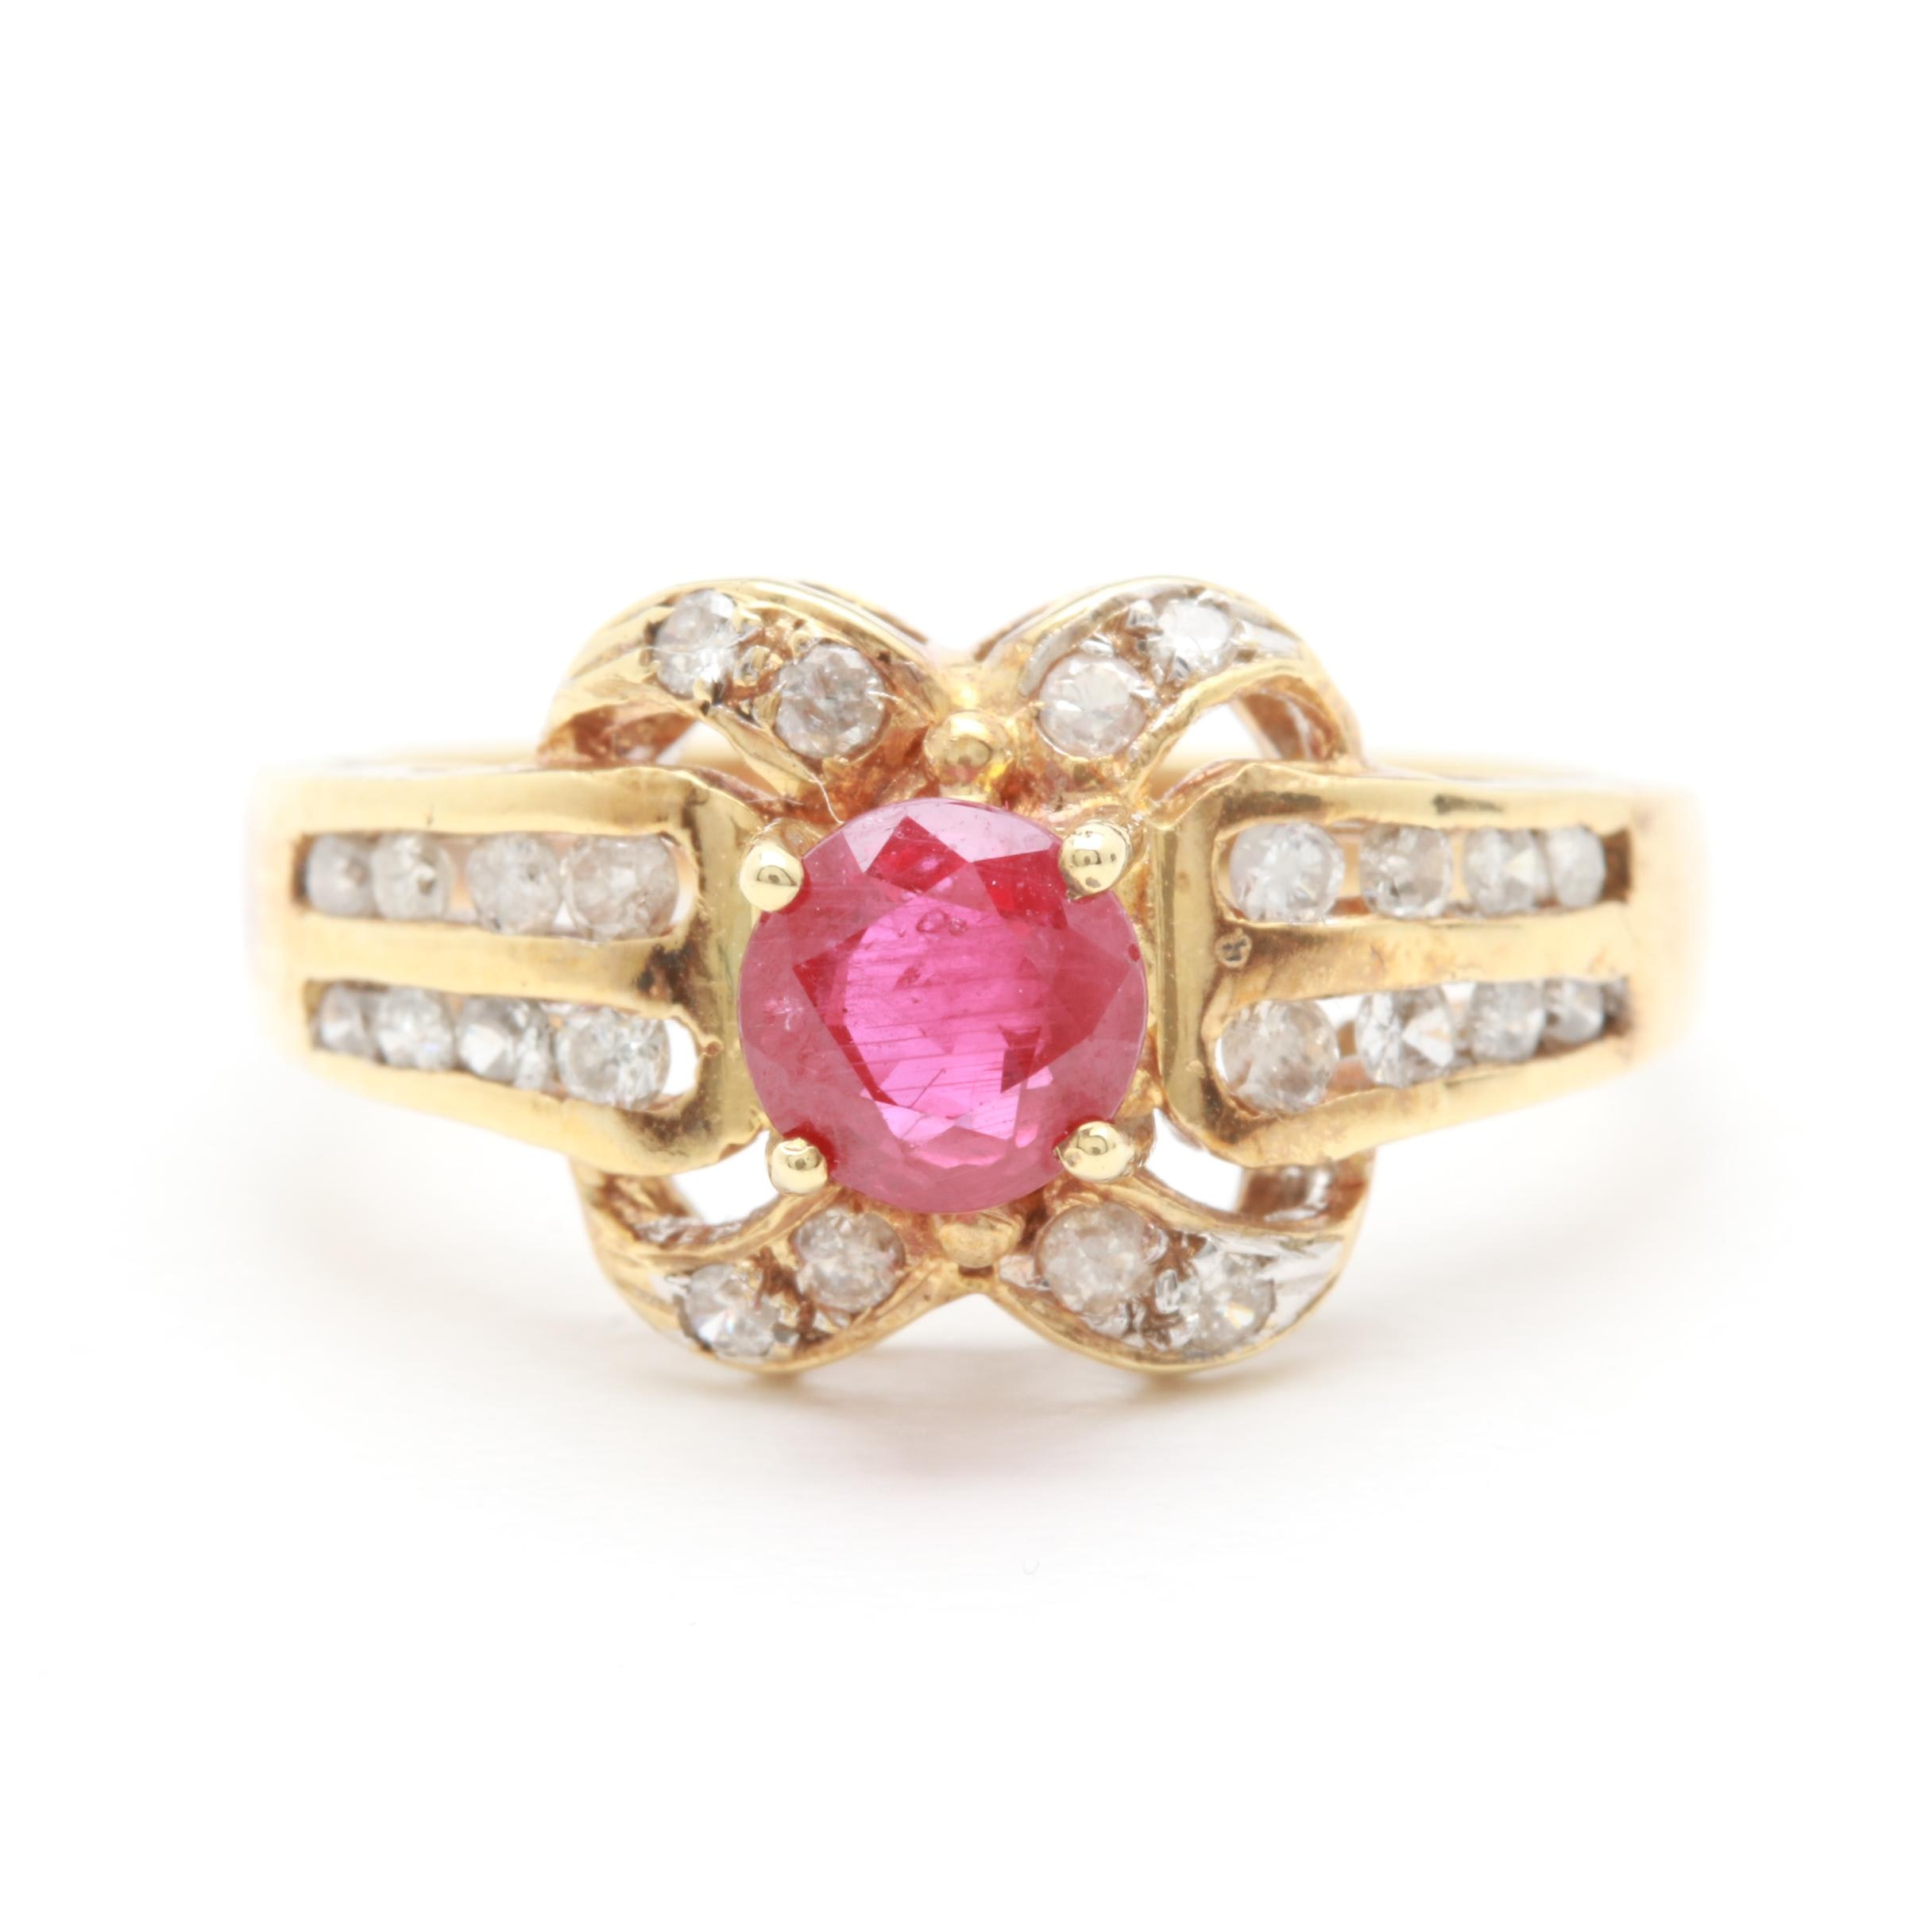 14K Yellow Gold 0.54 CT Ruby and Diamond Ring